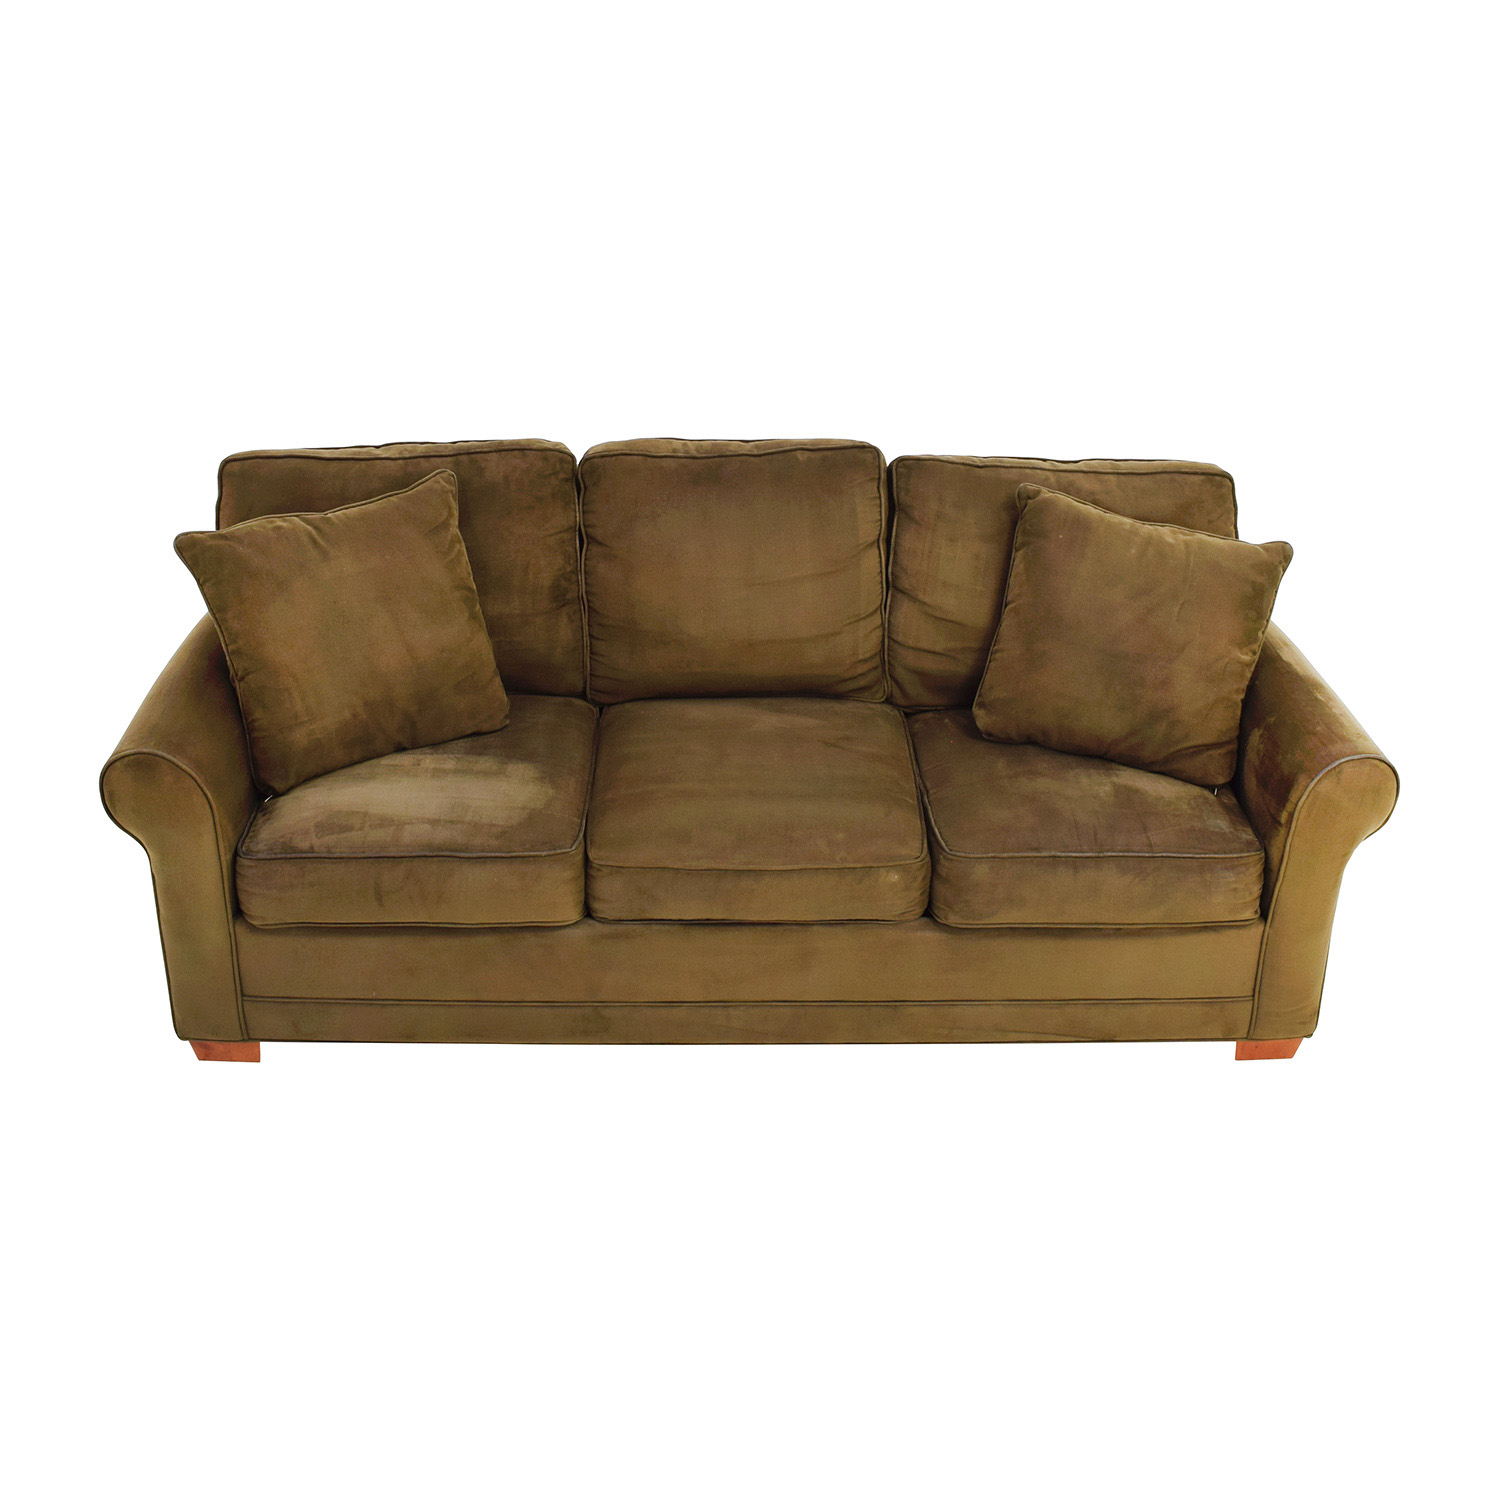 cb2 leather sofa on a bud